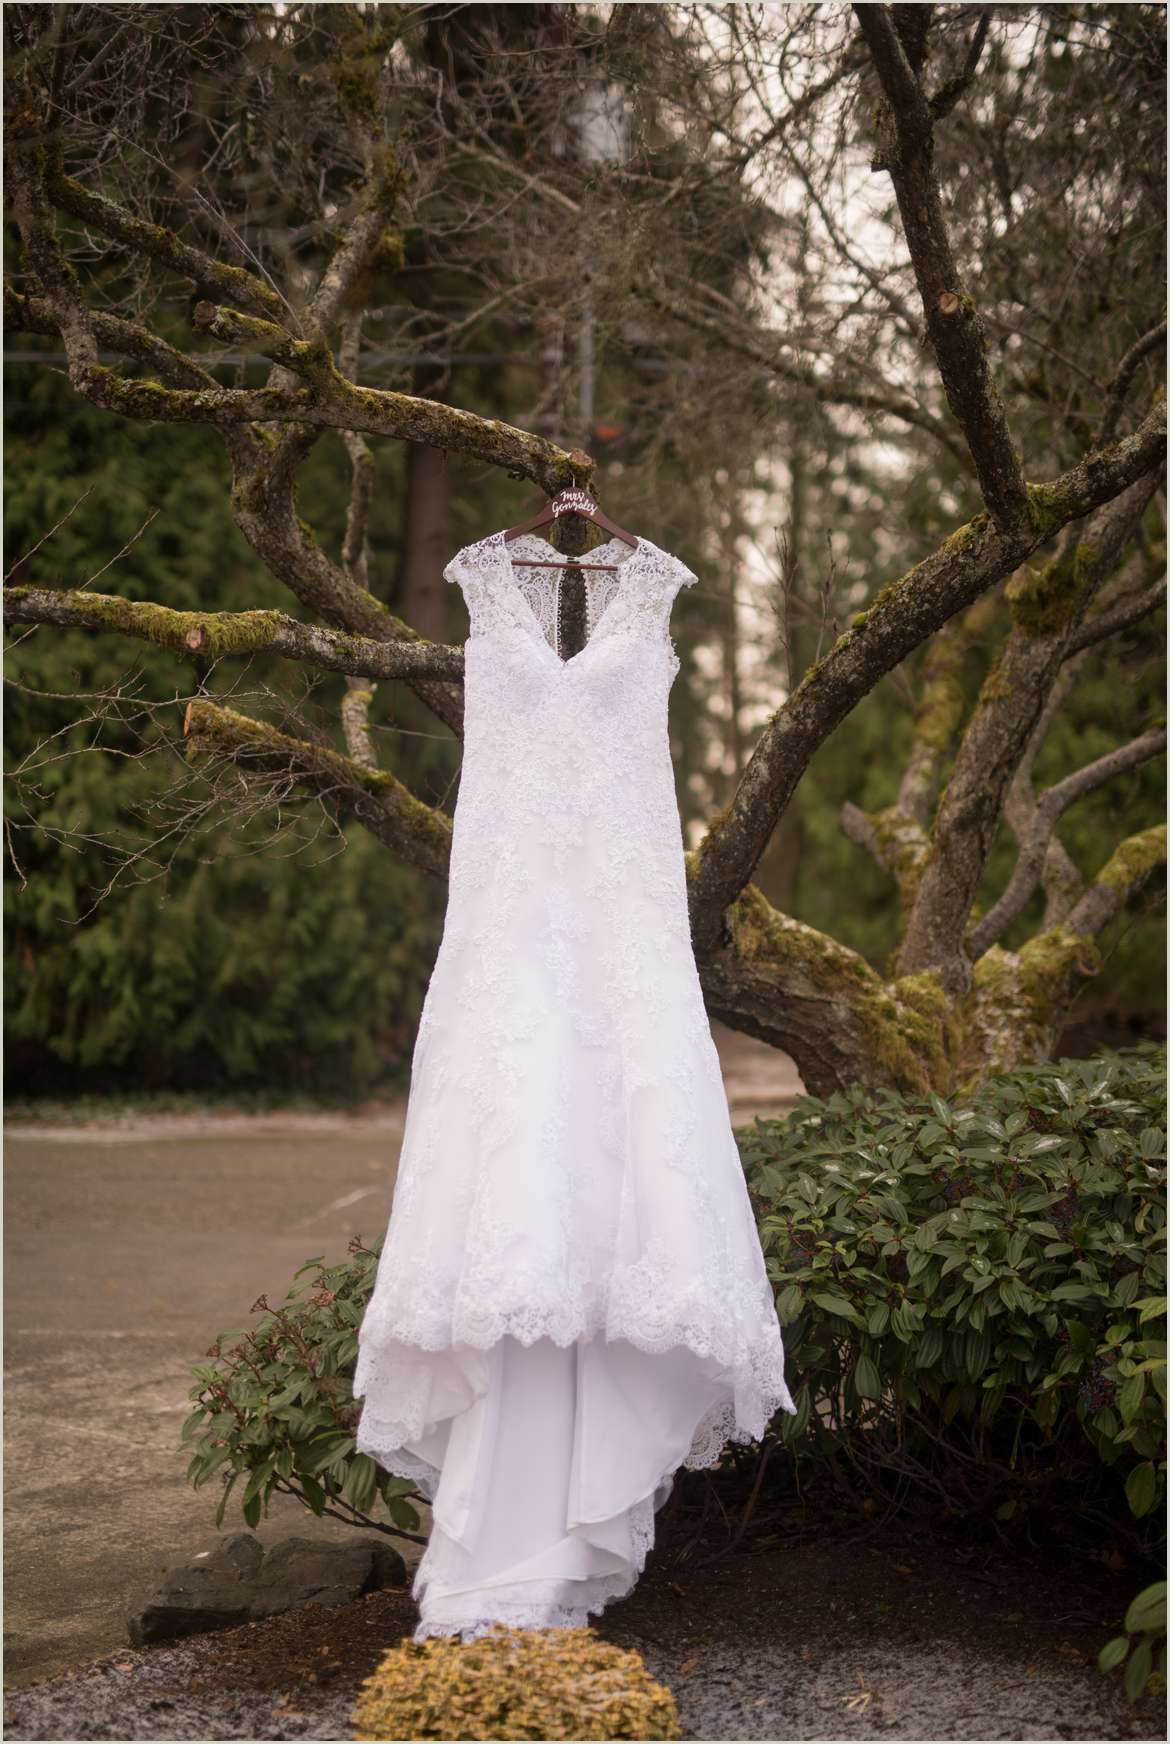 dress hanging in mossy tree